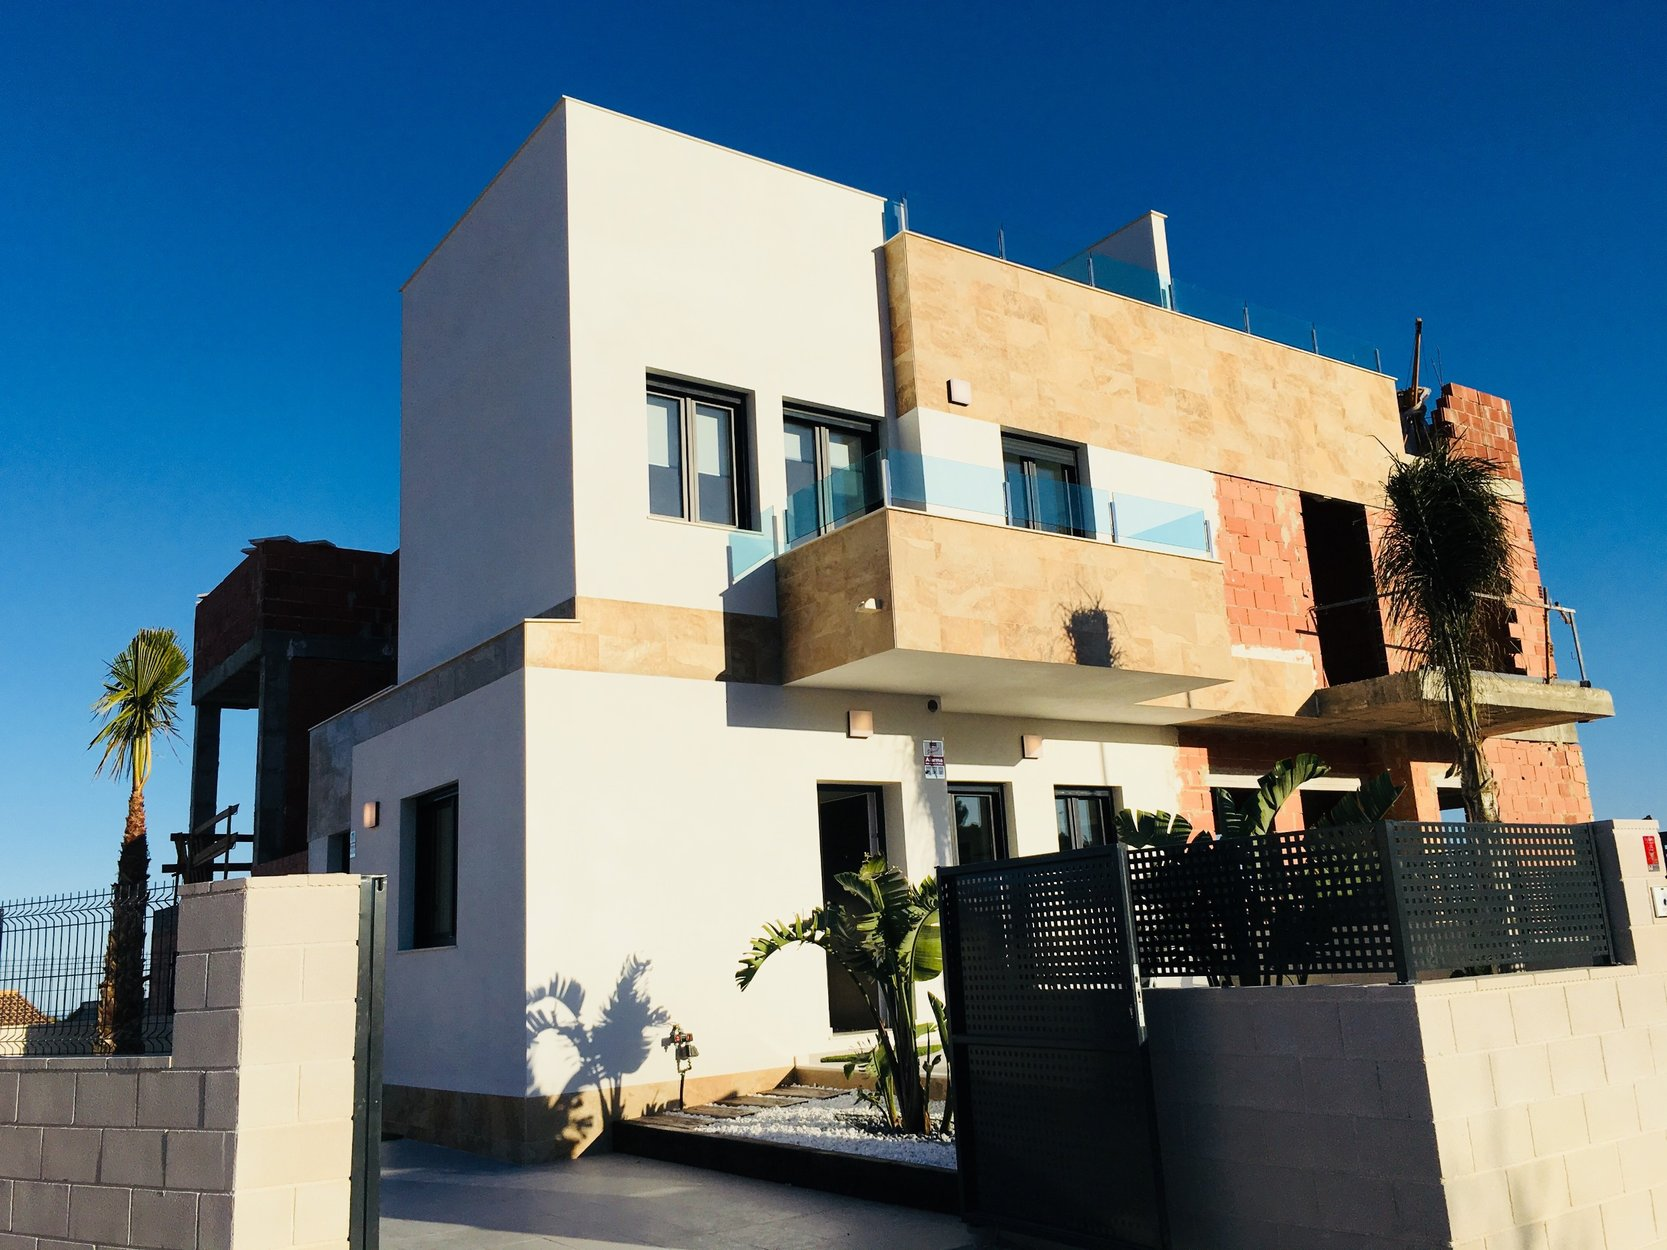 Townhouse for sale in Polop